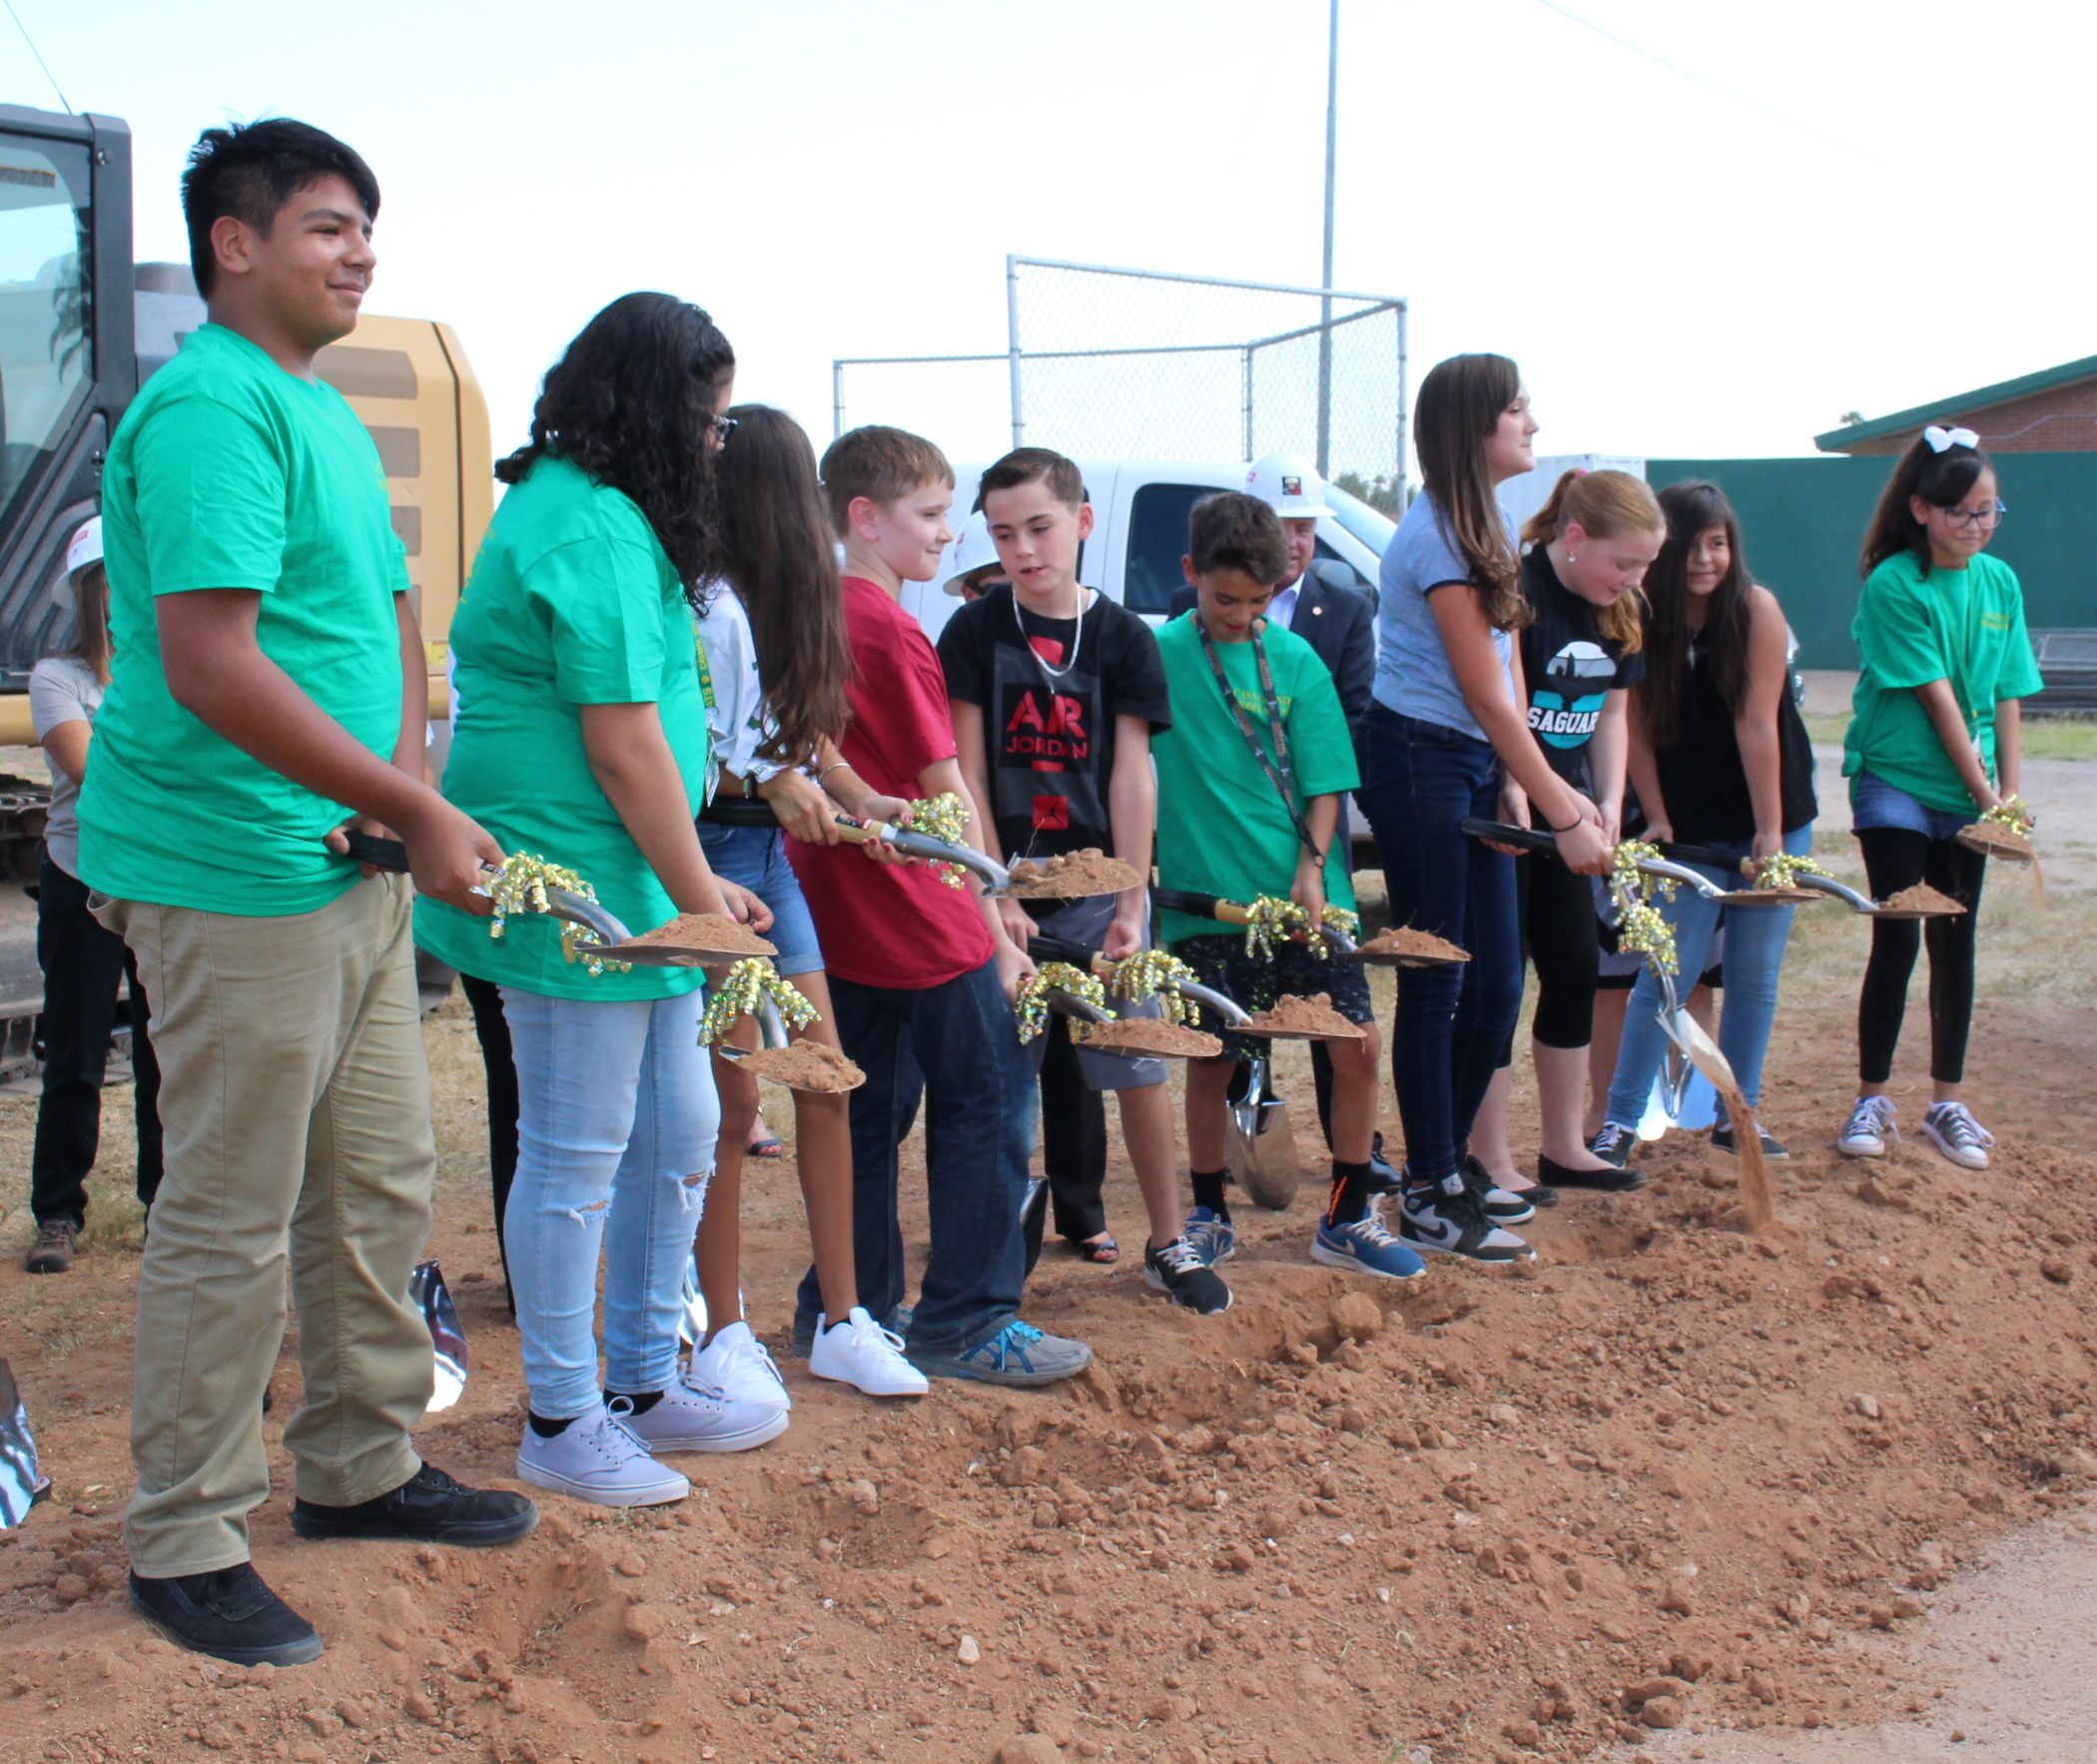 CG groundbreaking students